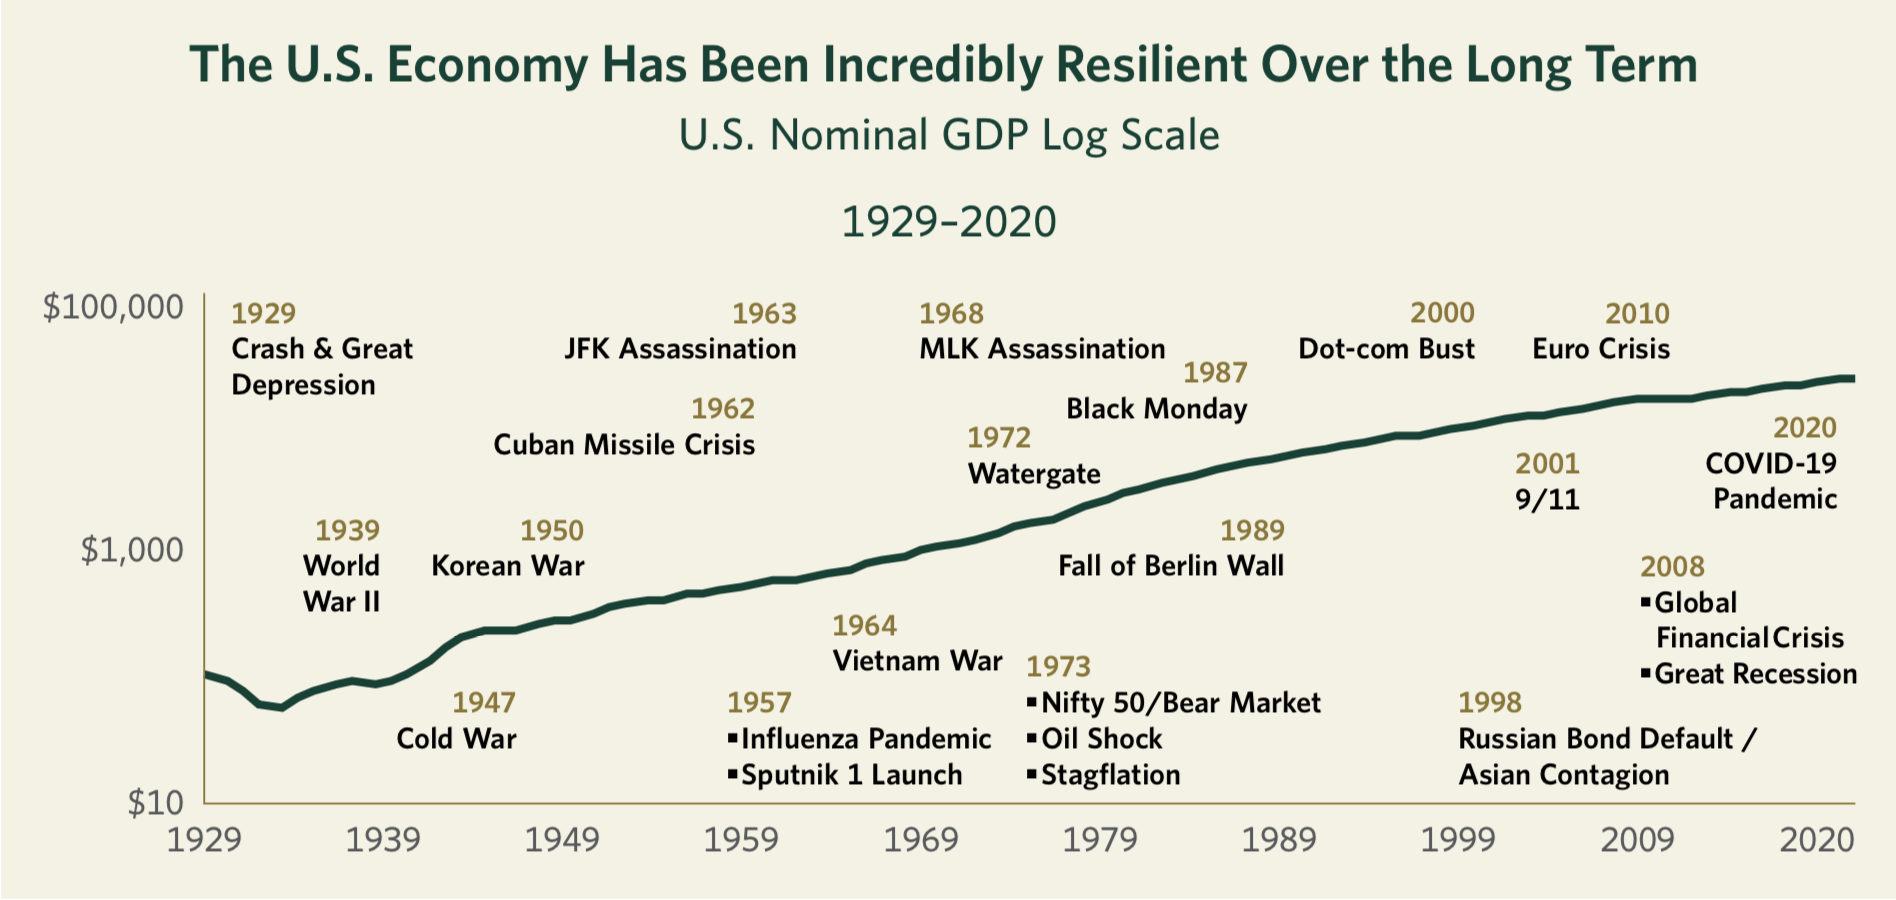 The U.S. Economy Has Been Incredibly Resilient Over the Long Term